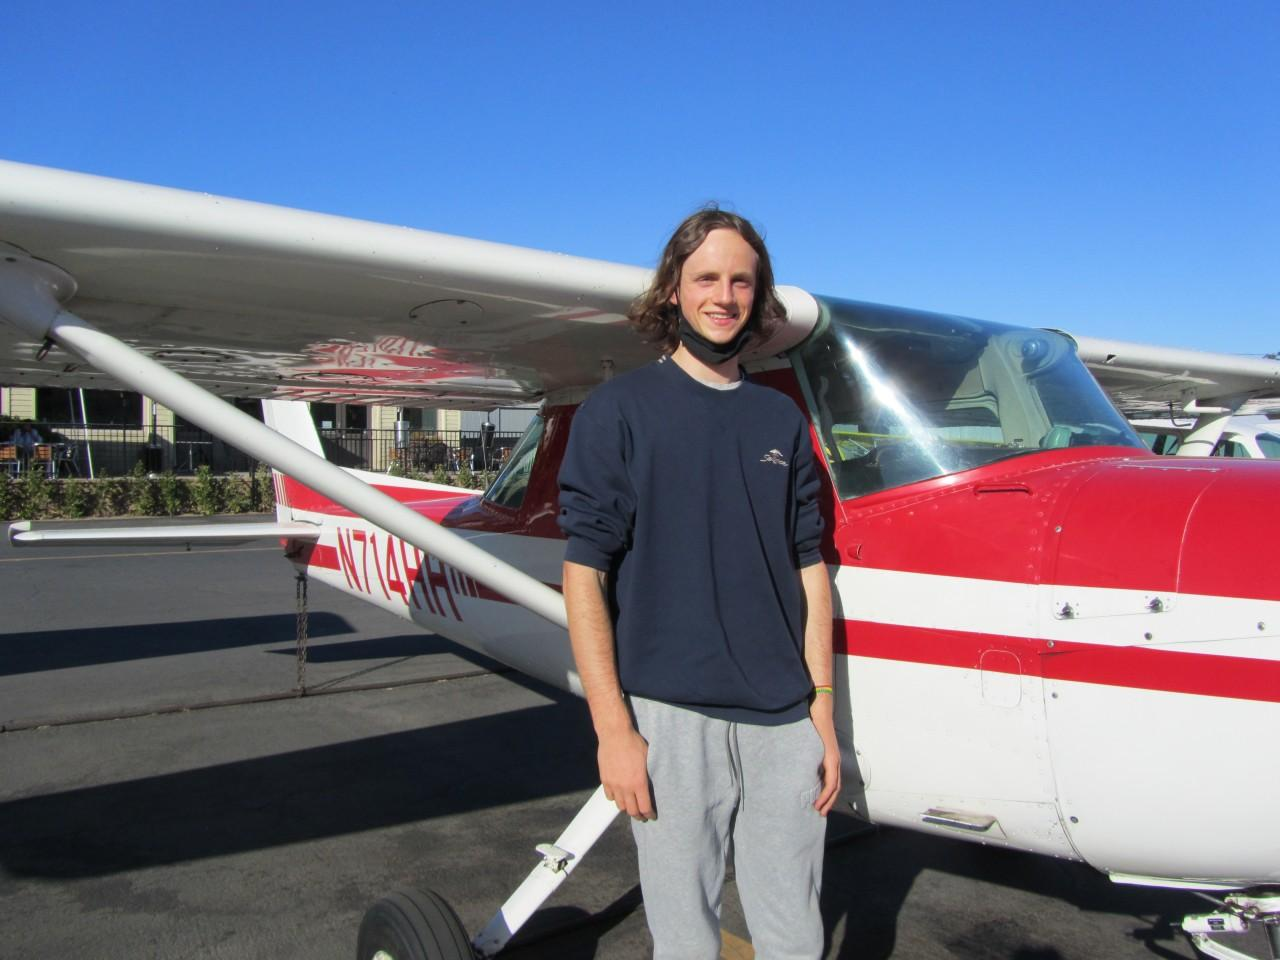 Robert Leavitt - First Solo!